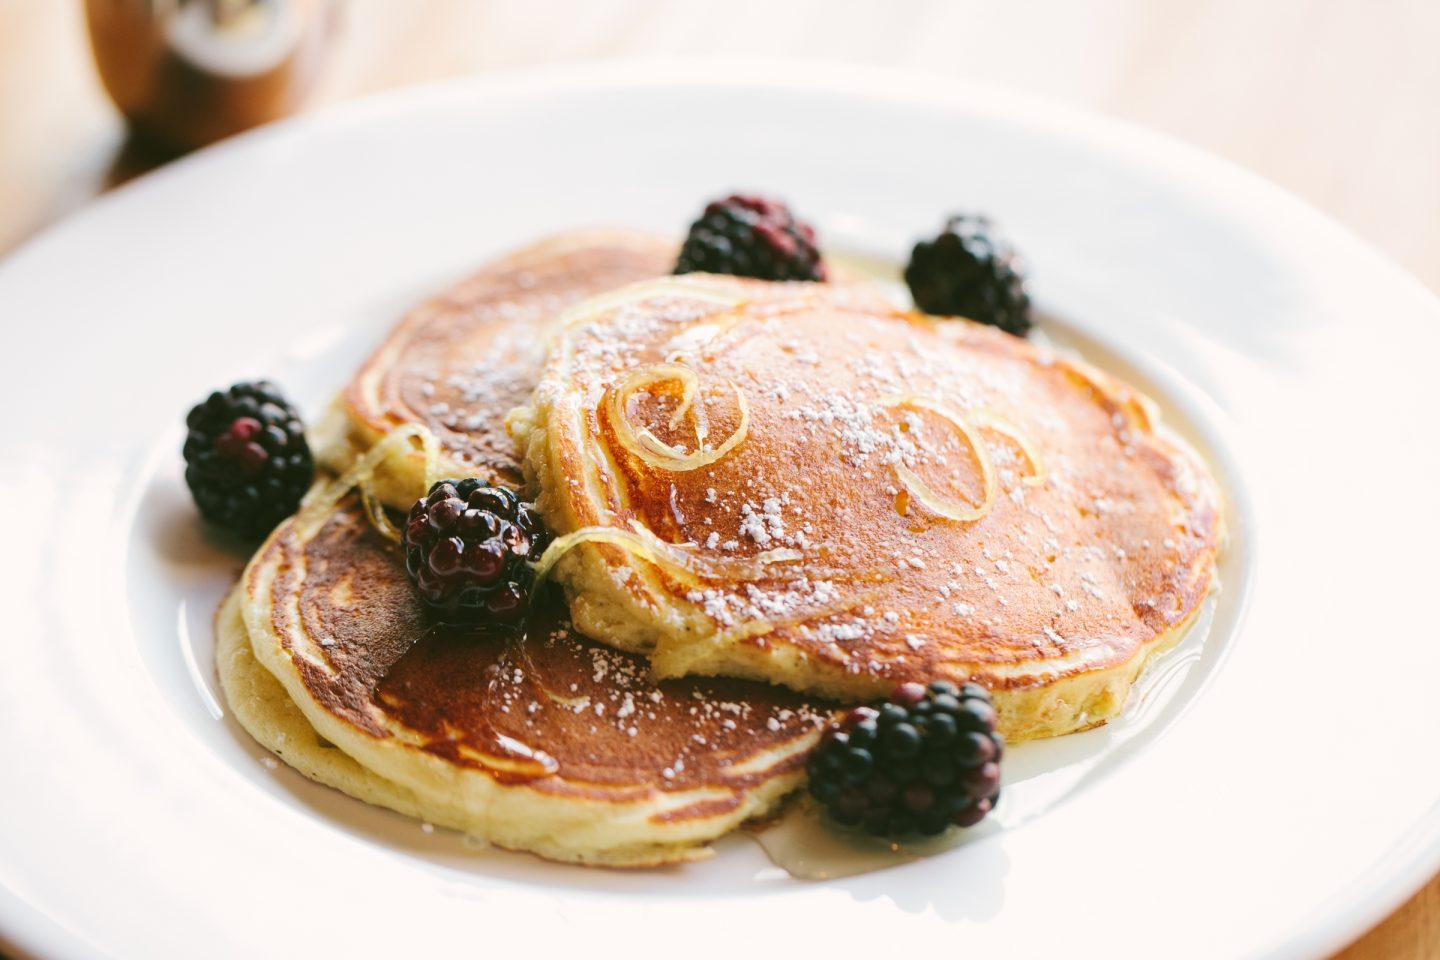 Beatrix's iconic light and fluffy pancakes with blackberries